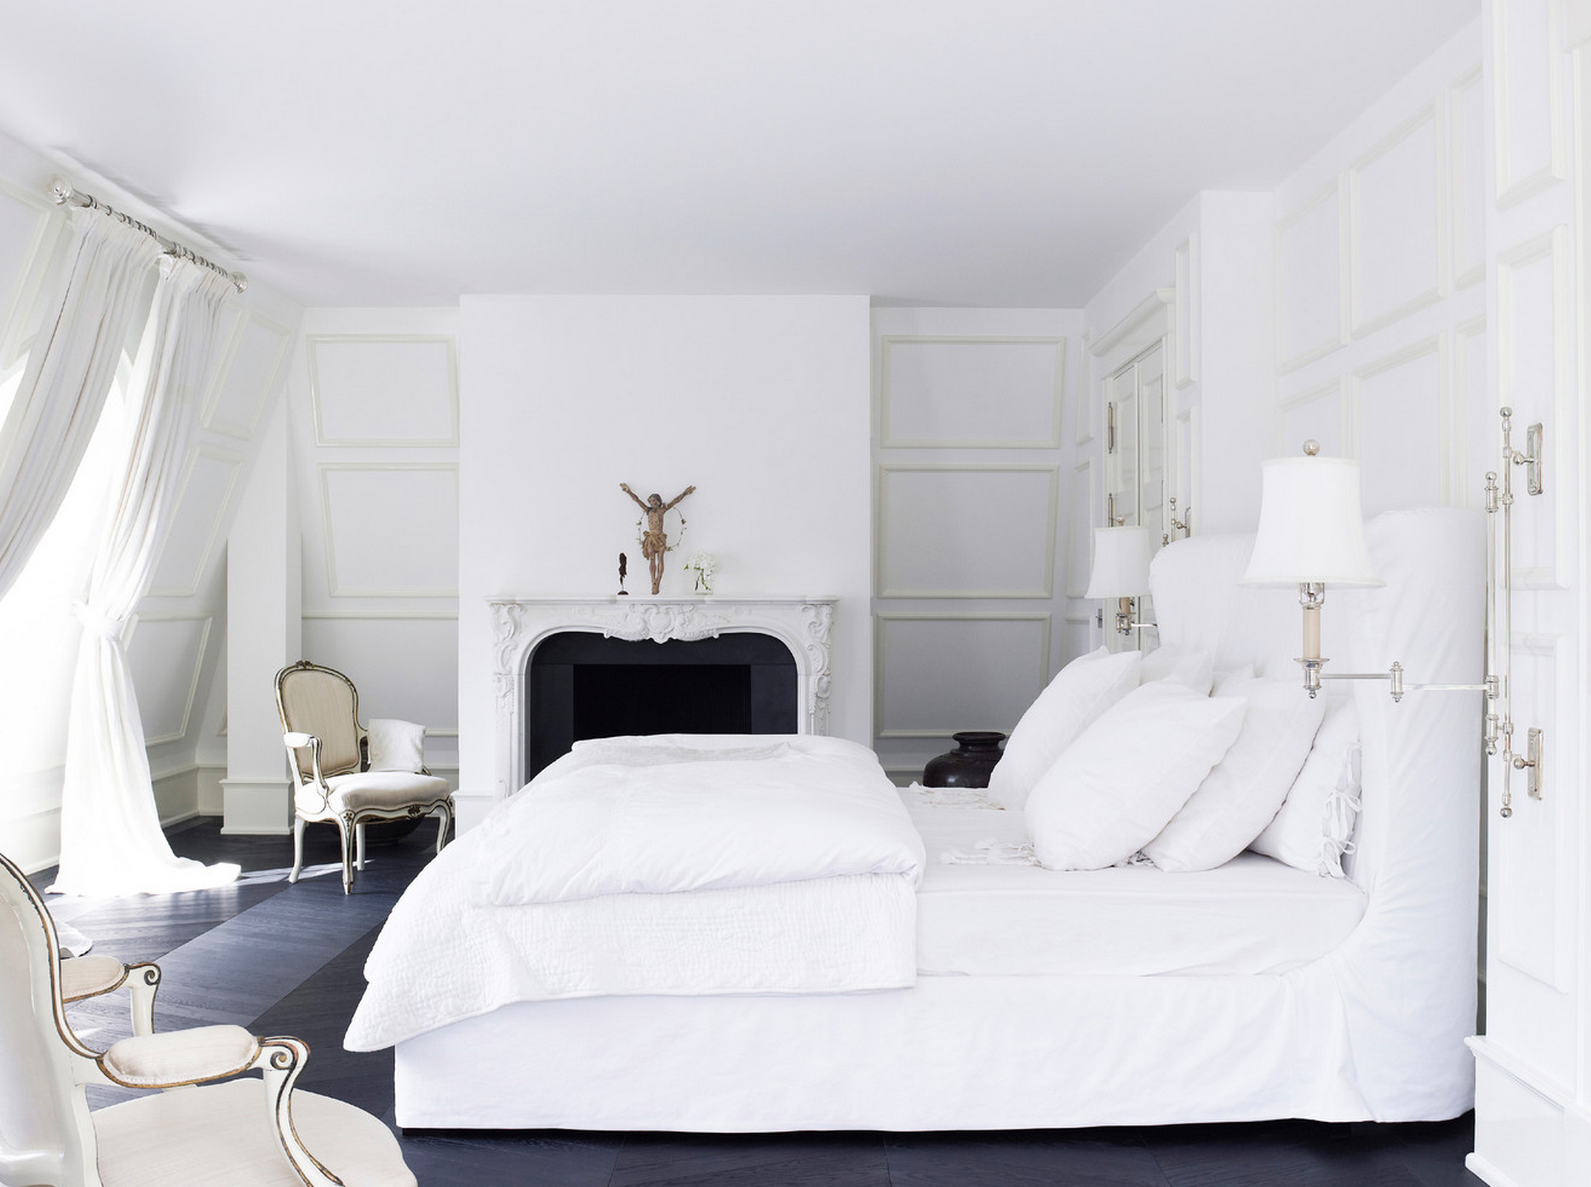 White Bedrooms 41 White Bedroom Interior Design Ideas & Pictures